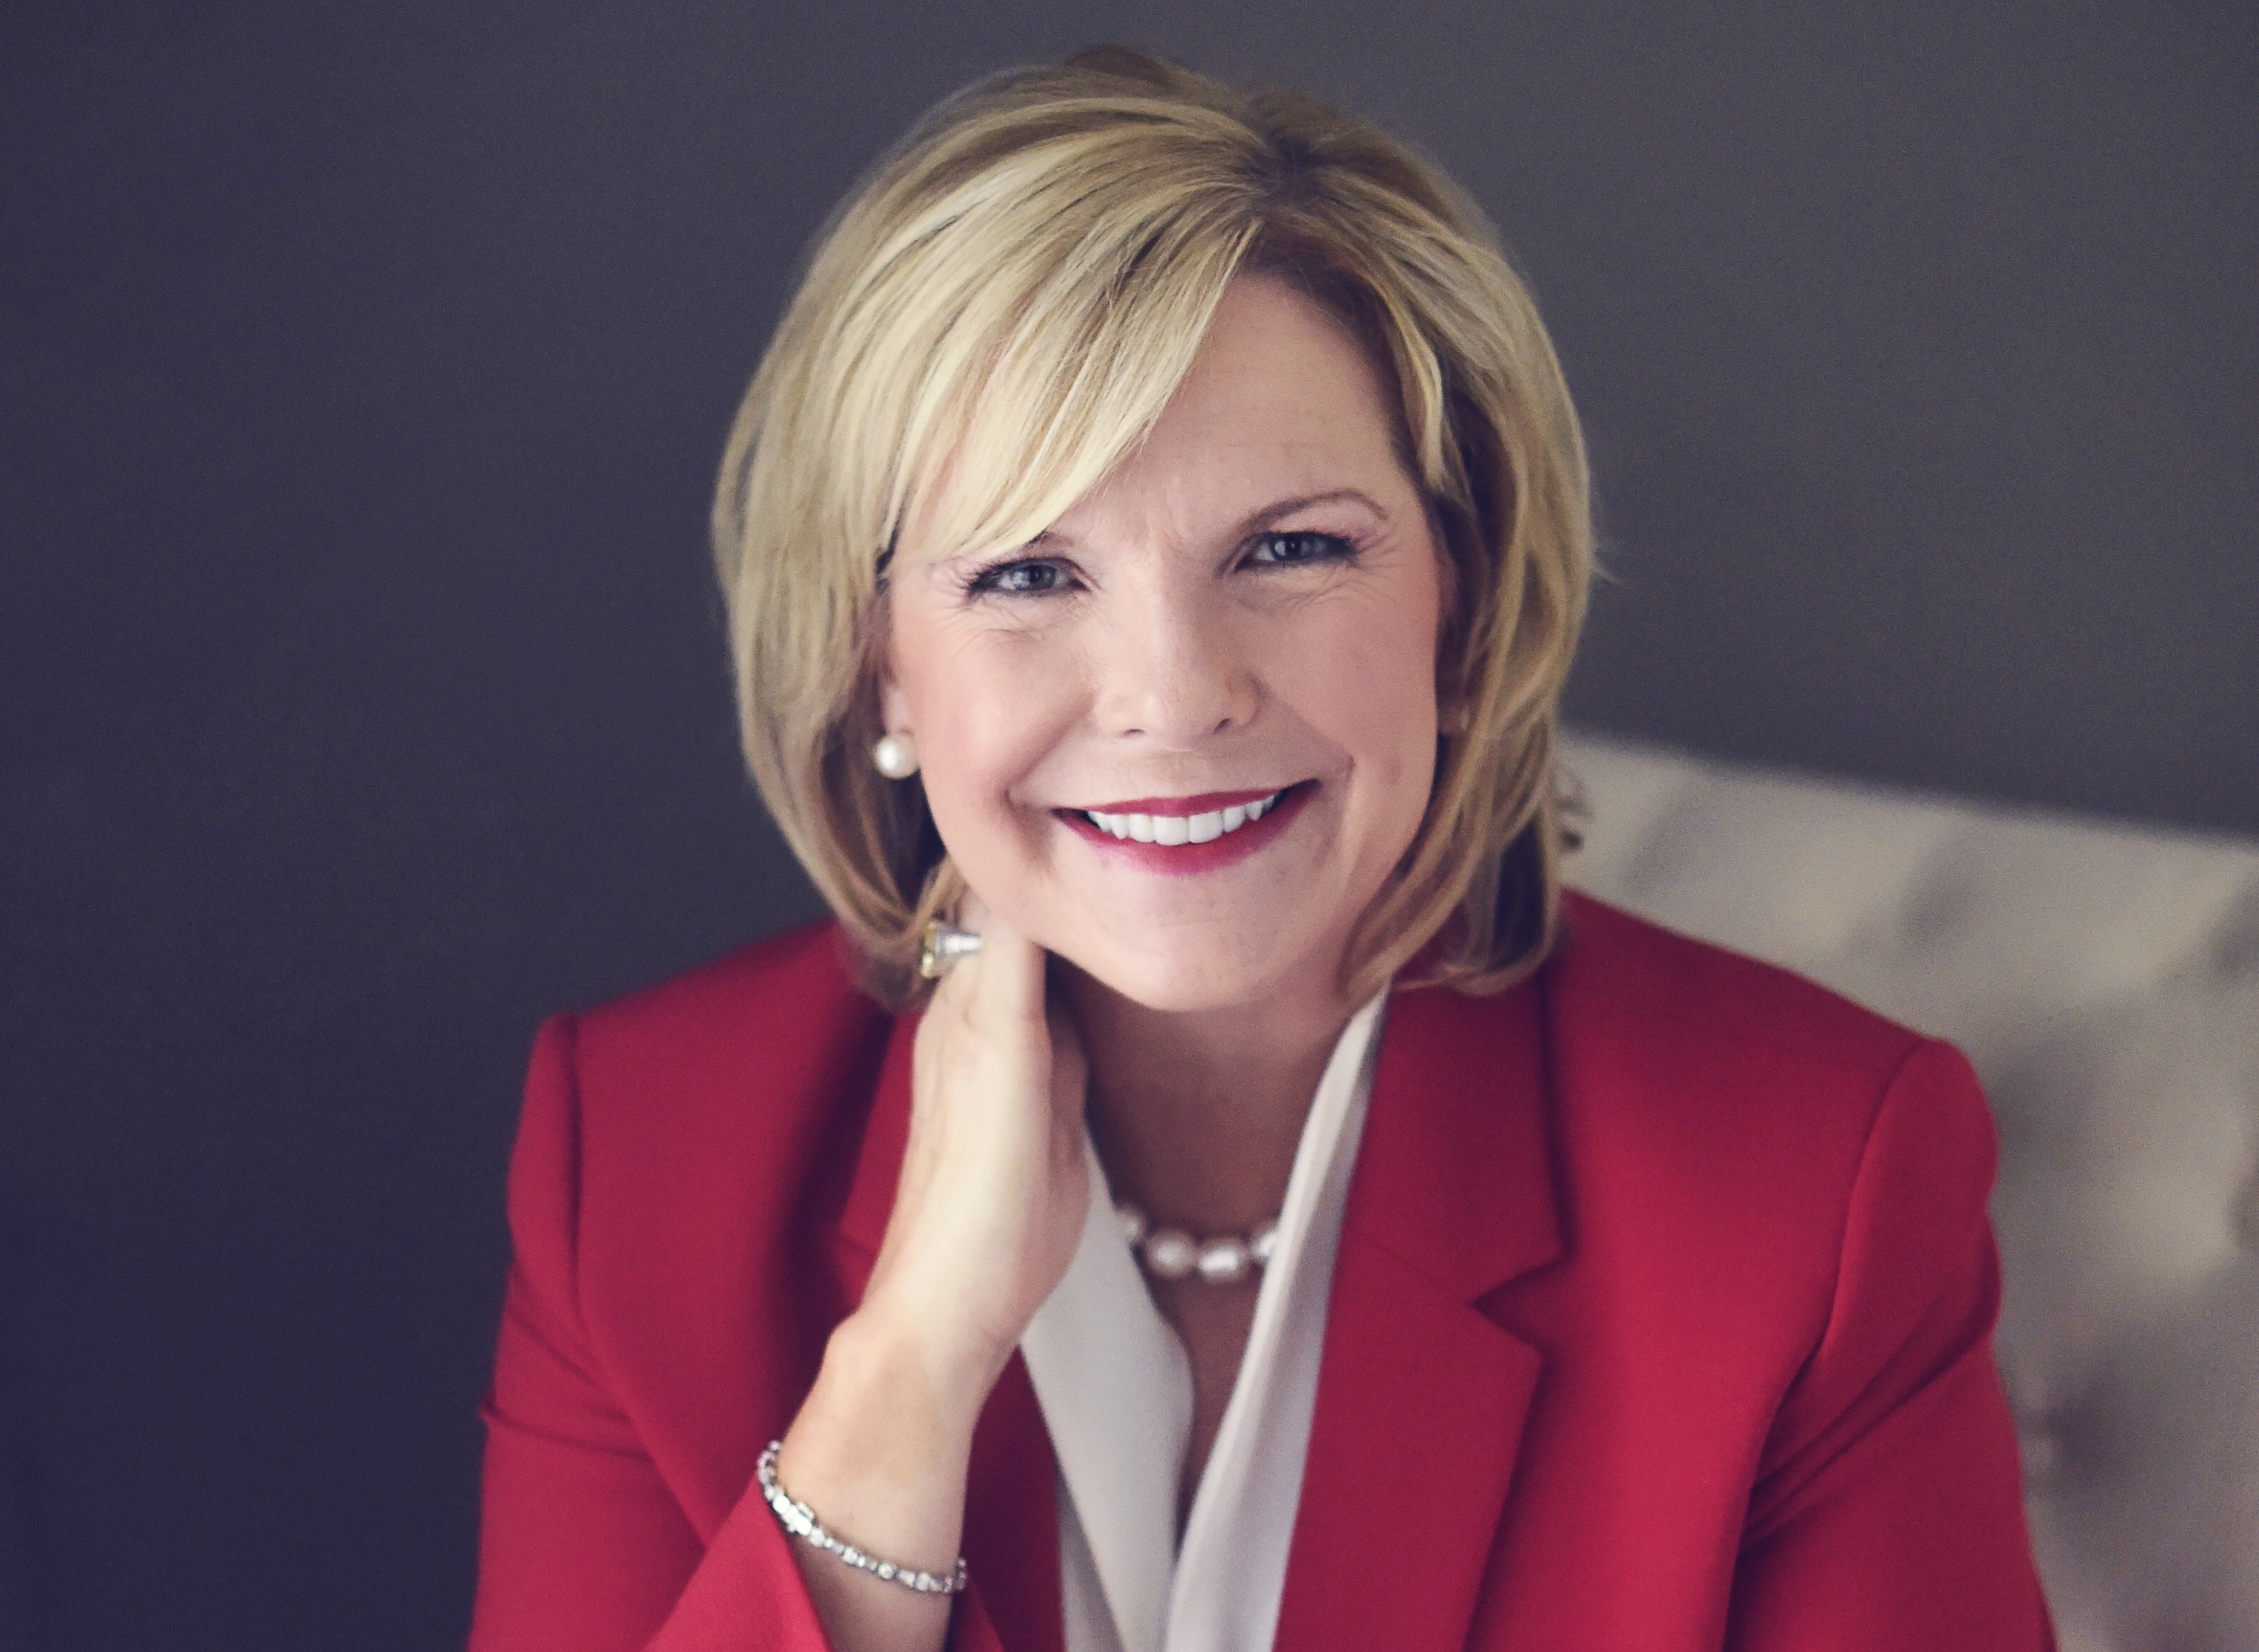 Centric Bank CEO Patti Husic Named One of the Most Powerful Women in Banking